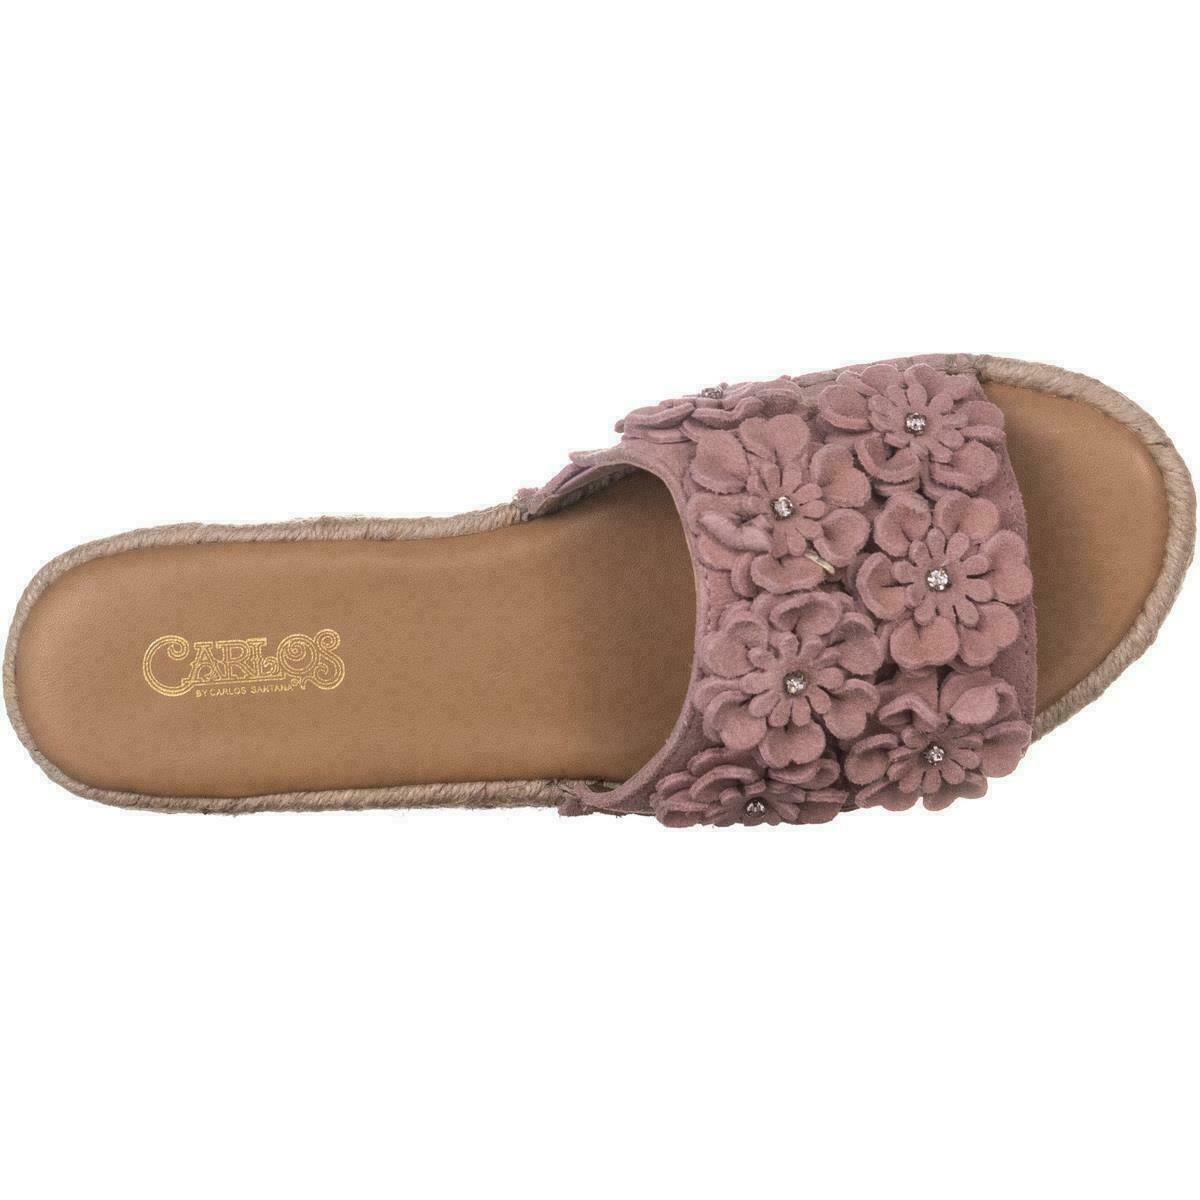 Carlos by Carlos Santana Chandler Sandals Pink Blush, Size 9 M